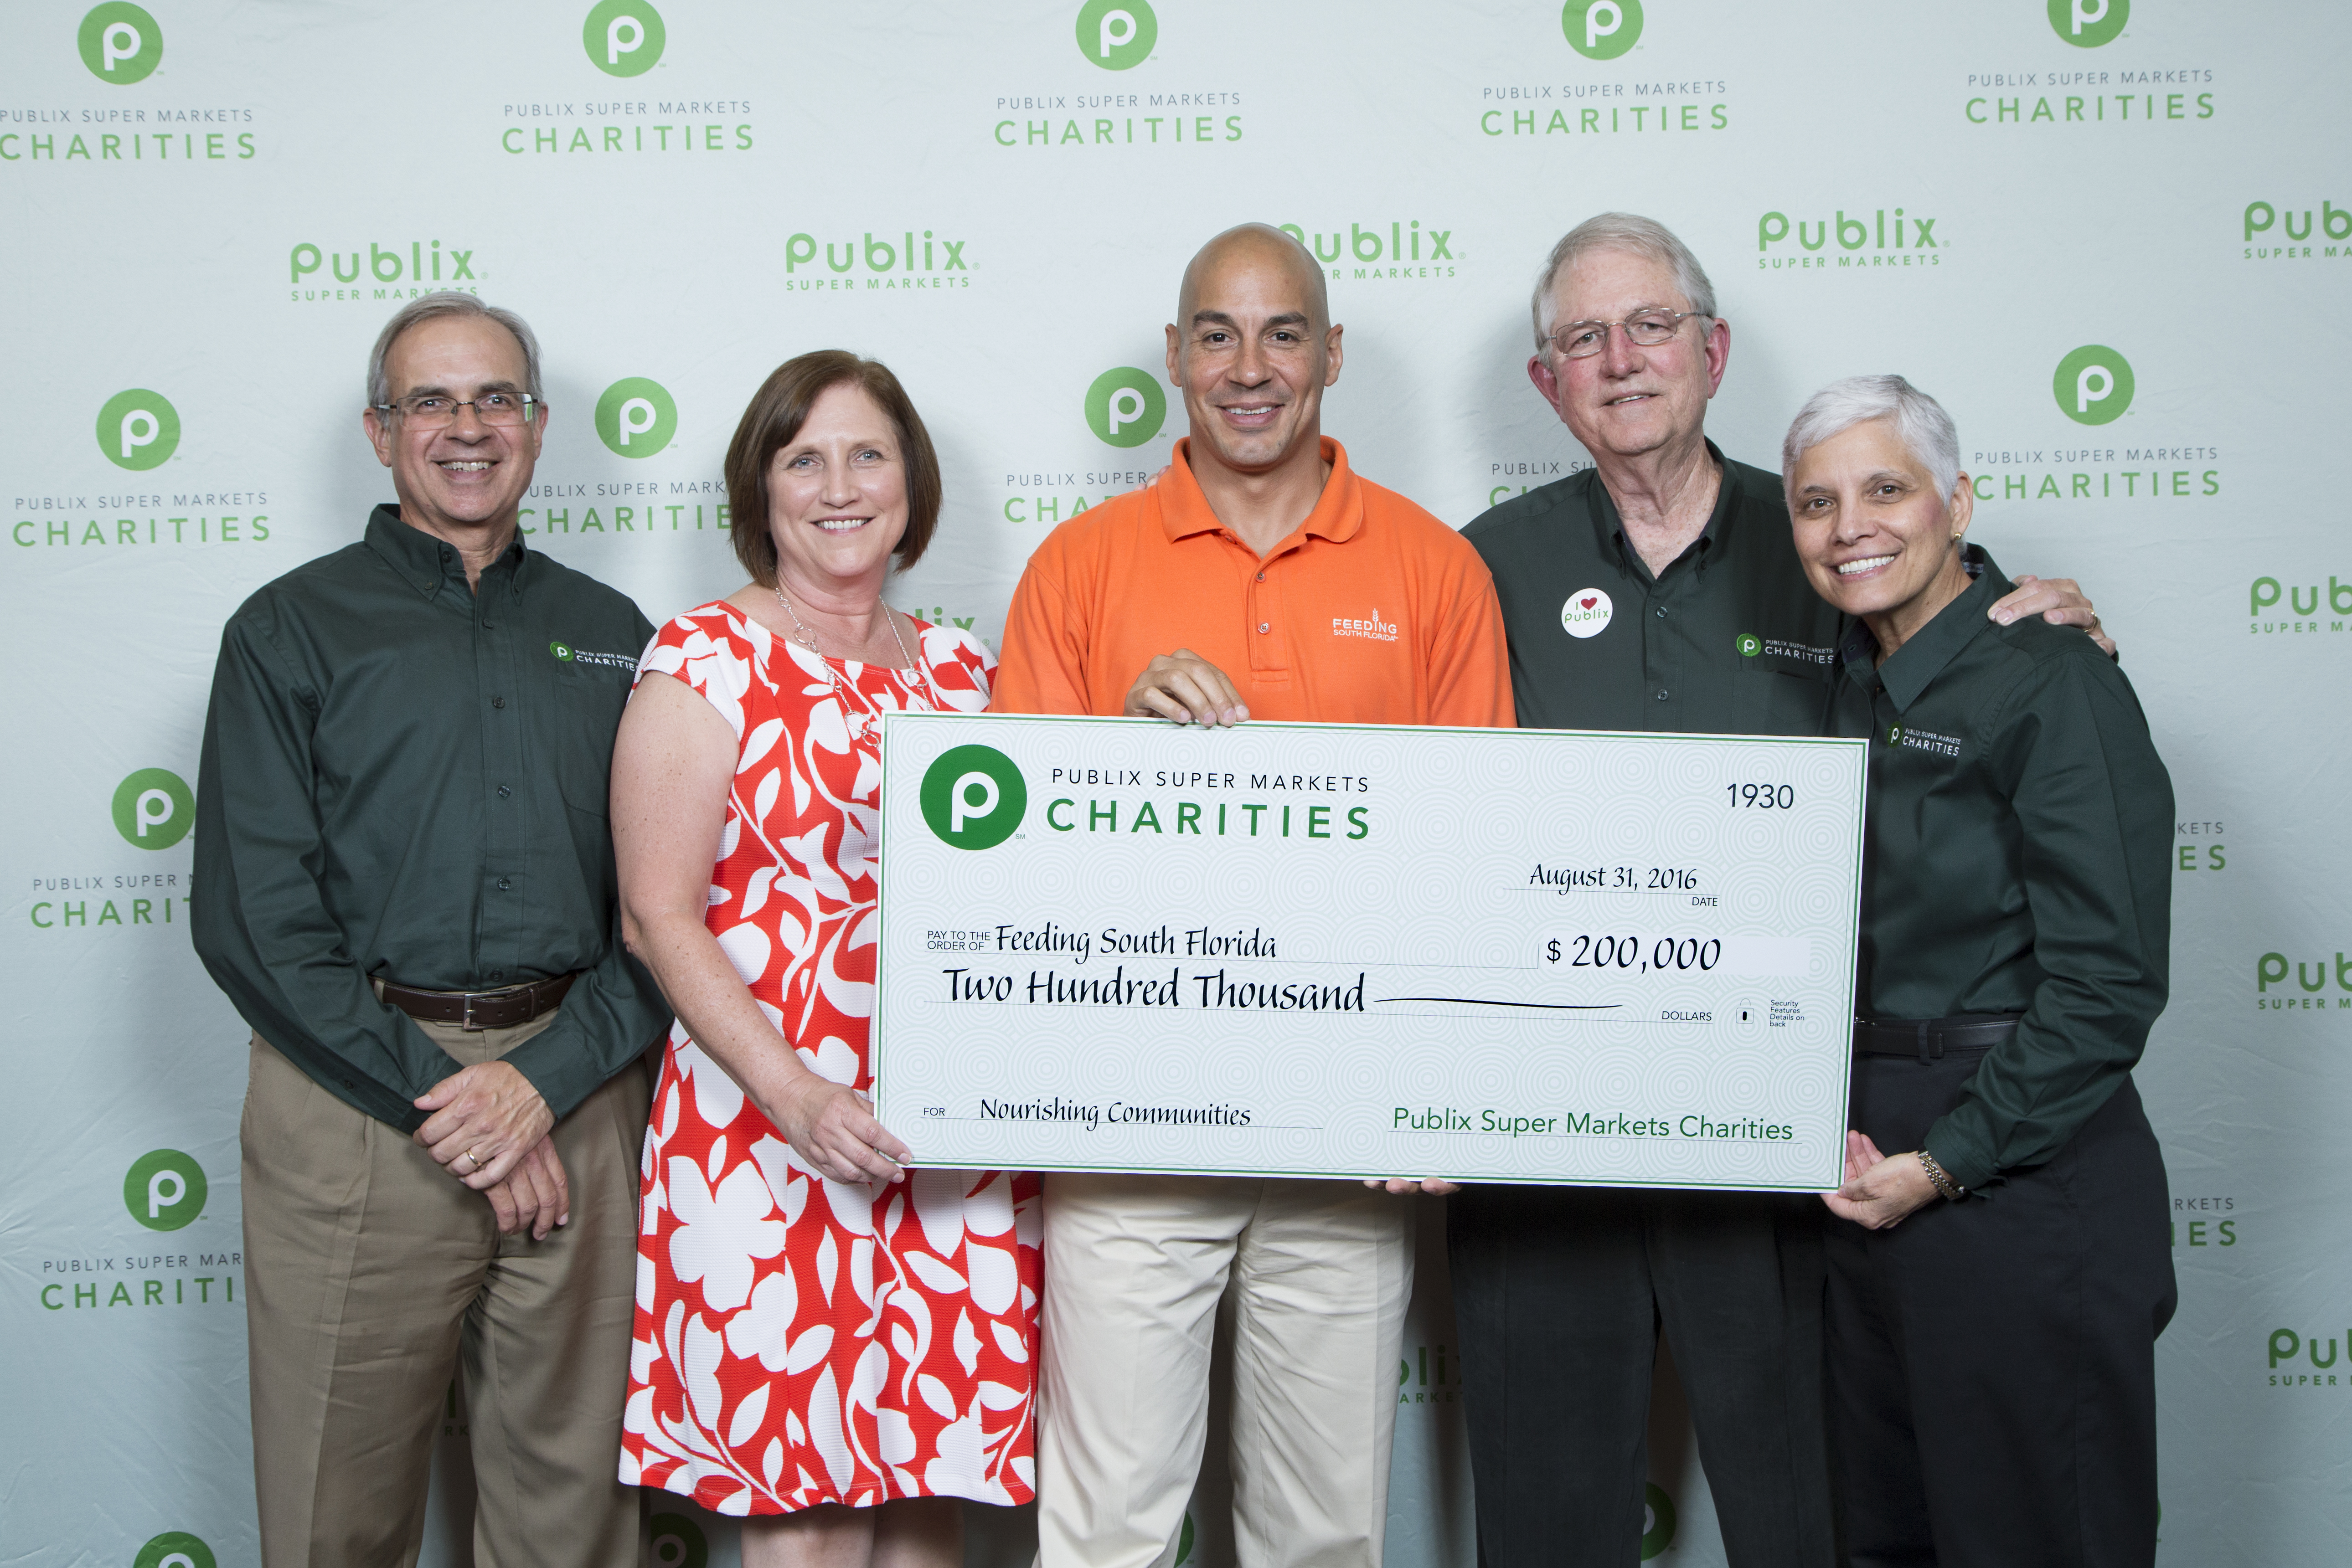 Publix Super Markets Charities to Present $200,000 Check to Feeding South Florida® During Sept. 9 Mobile Food Distribution in Miami